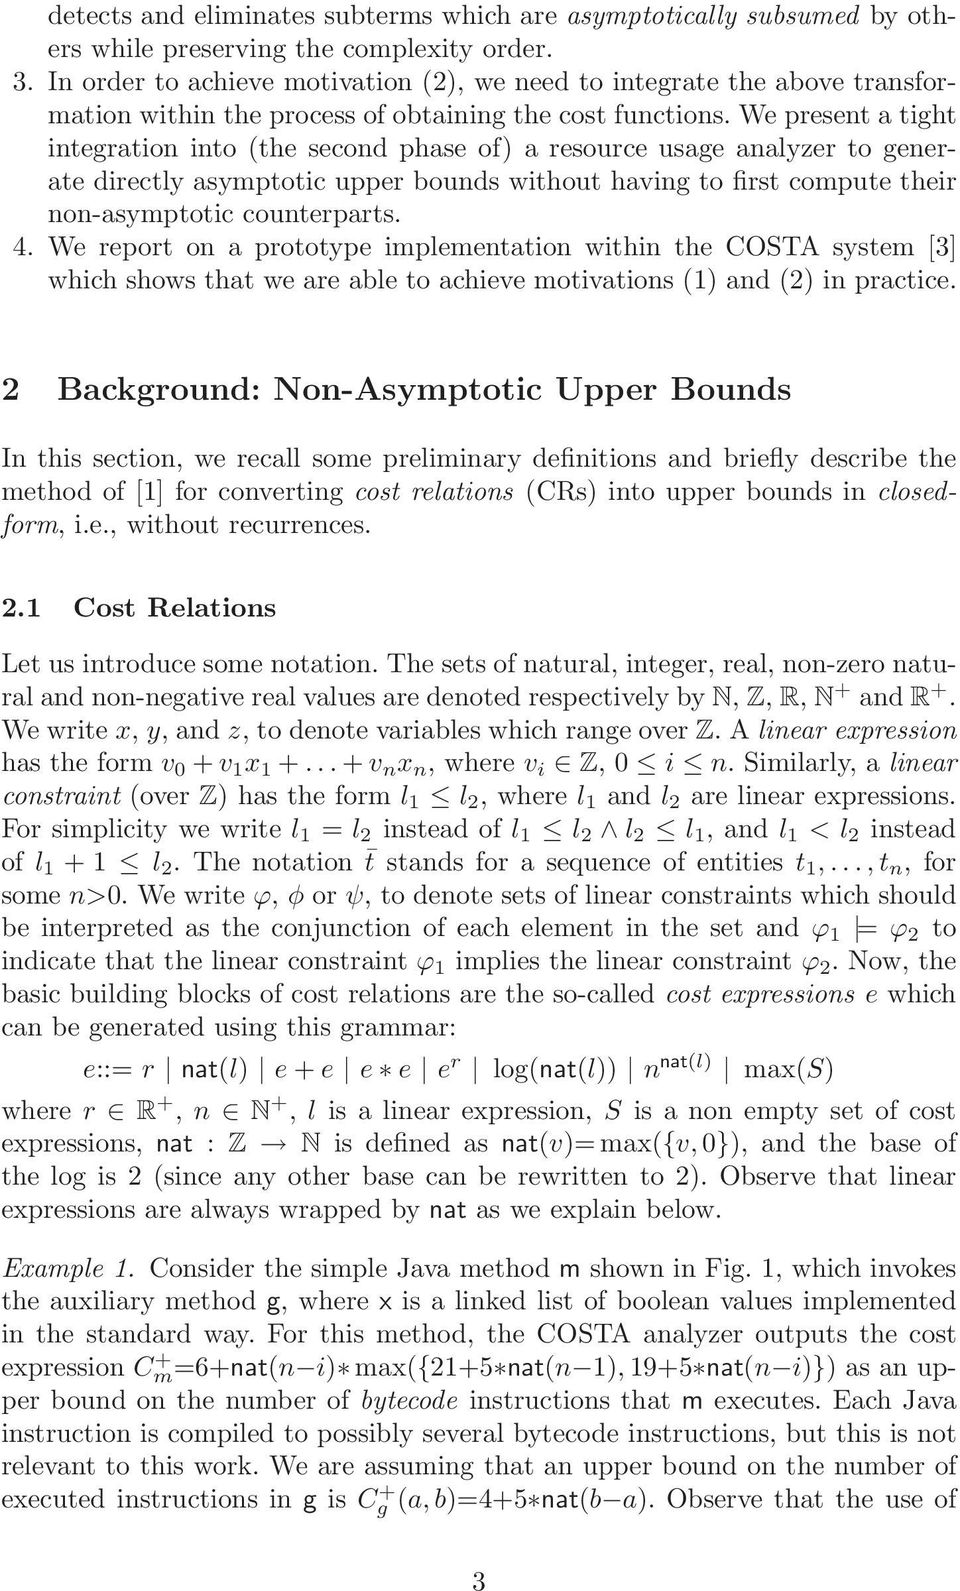 We present a tight integration into (the second phase of) a resource usage analyzer to generate directly asymptotic upper bounds without having to first compute their non-asymptotic counterparts. 4.